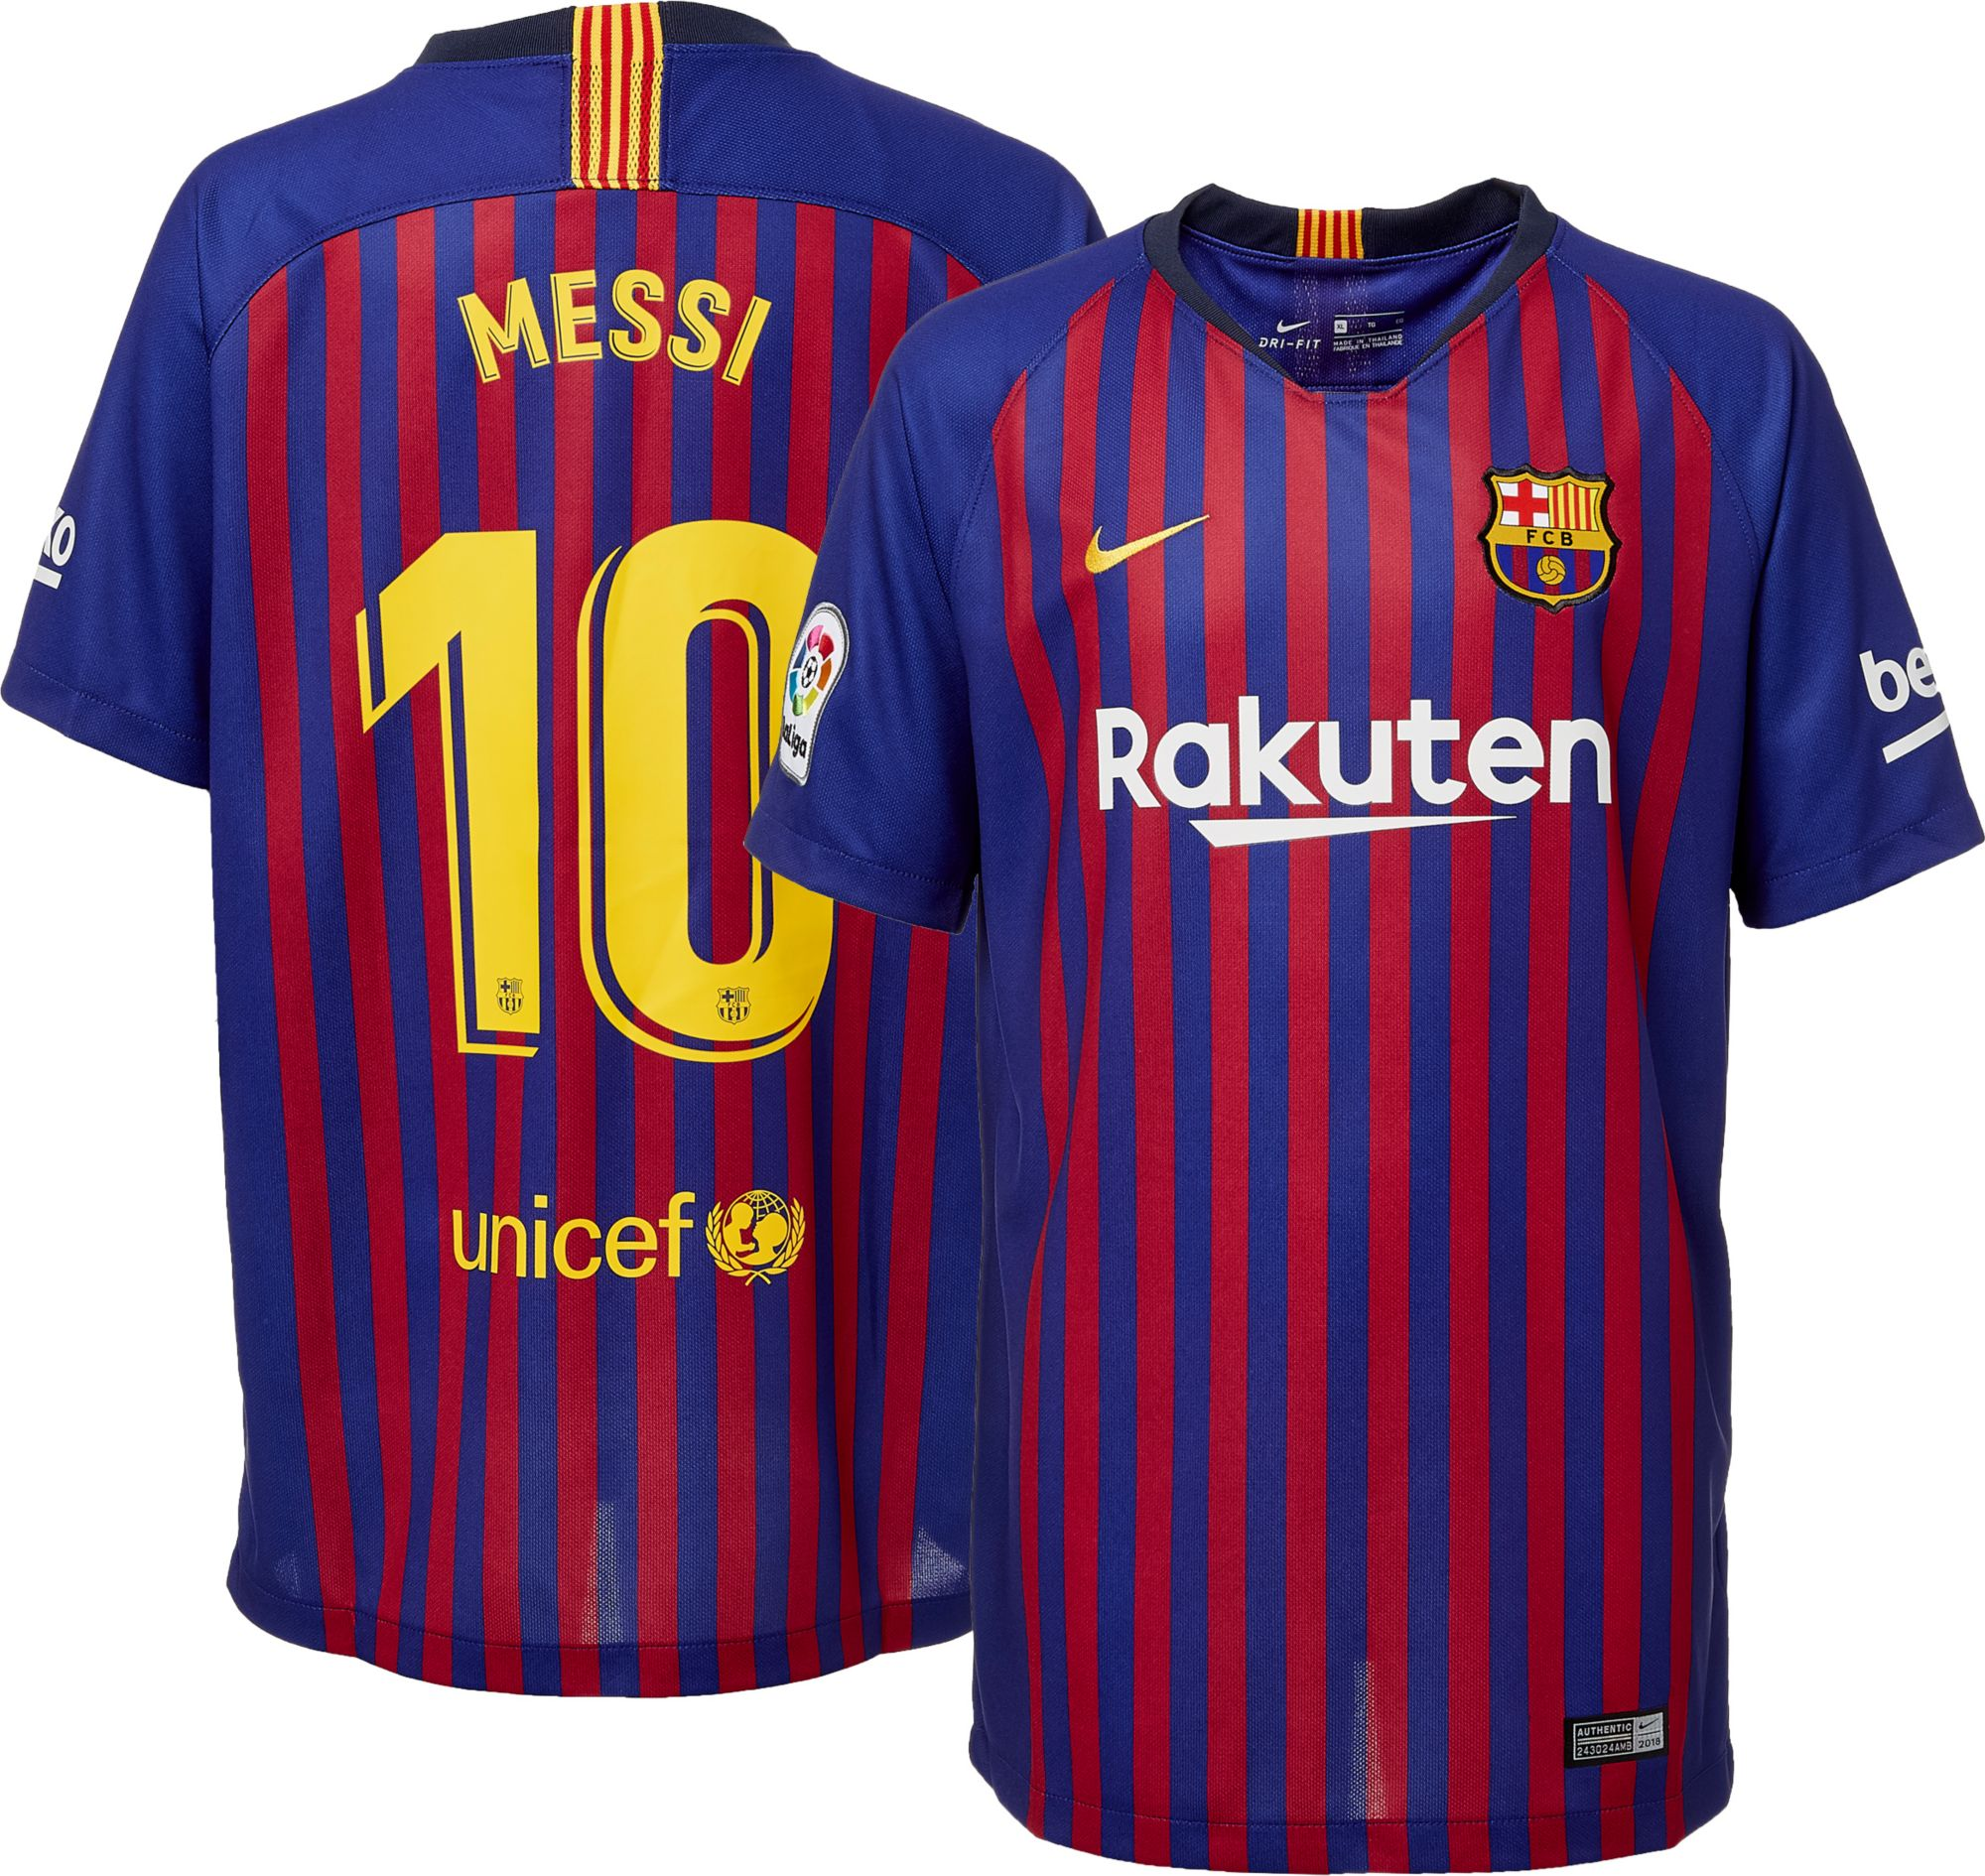 new style 759a1 84586 lionel messi jersey